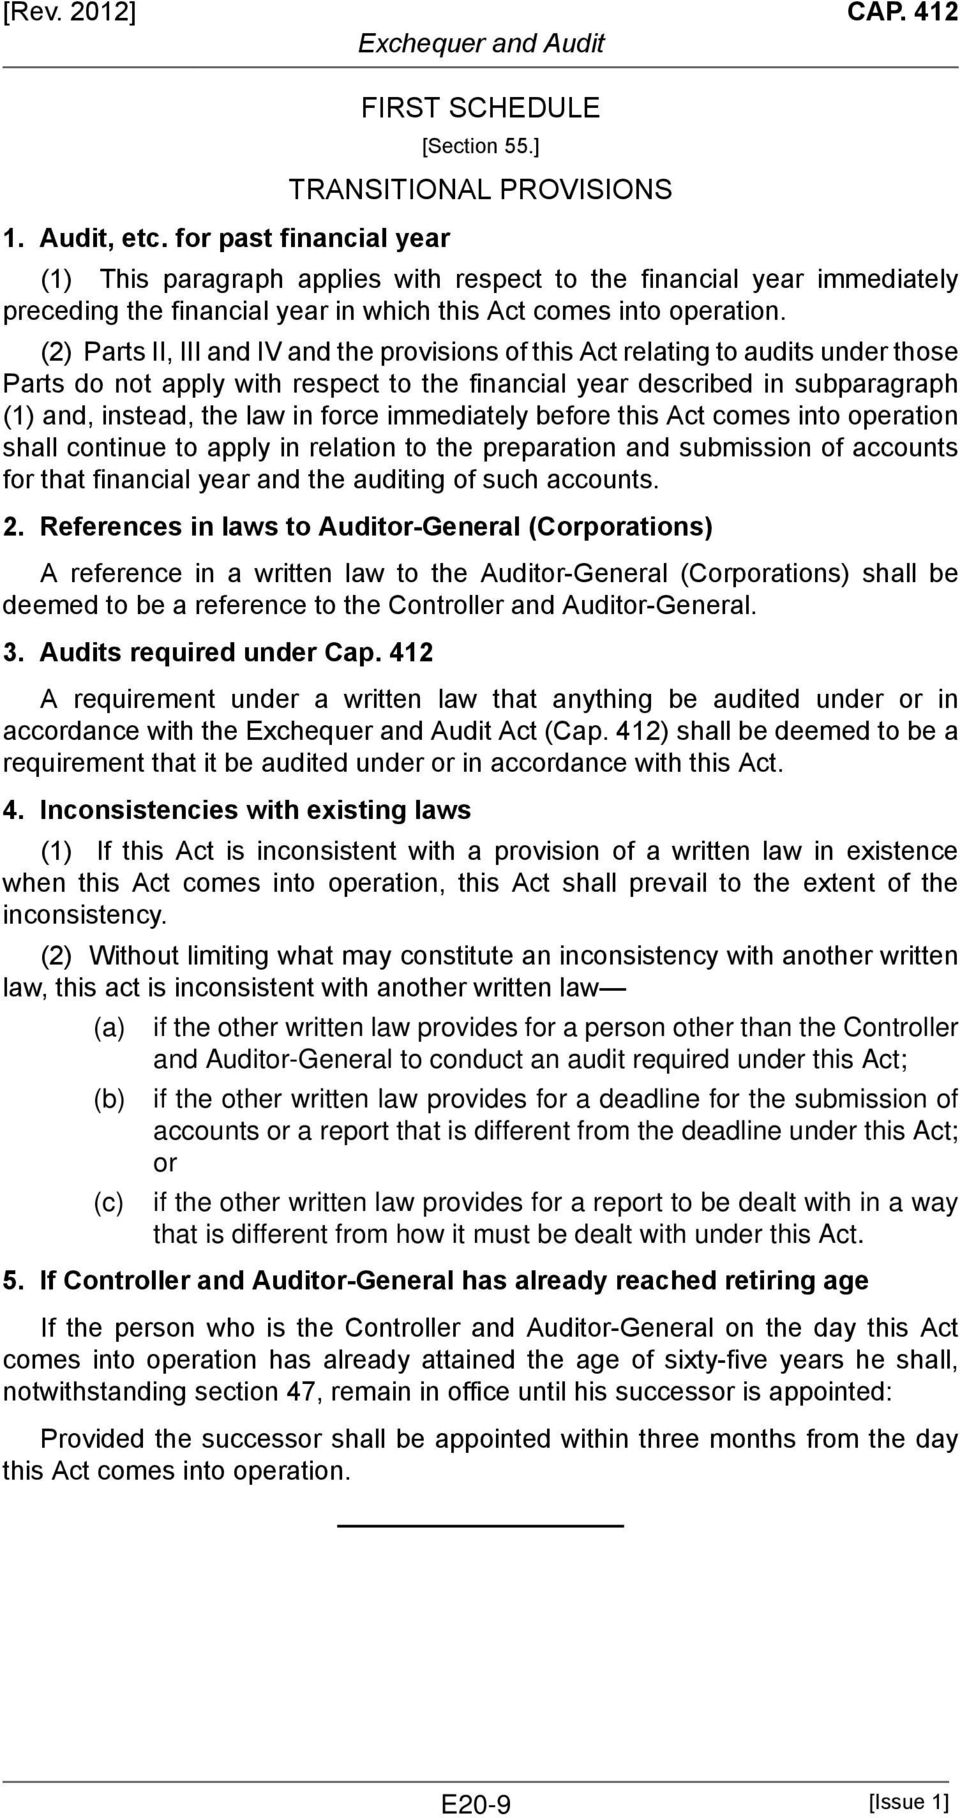 (2) Parts II, III and IV and the provisions of this Act relating to audits under those Parts do not apply with respect to the financial year described in subparagraph (1) and, instead, the law in